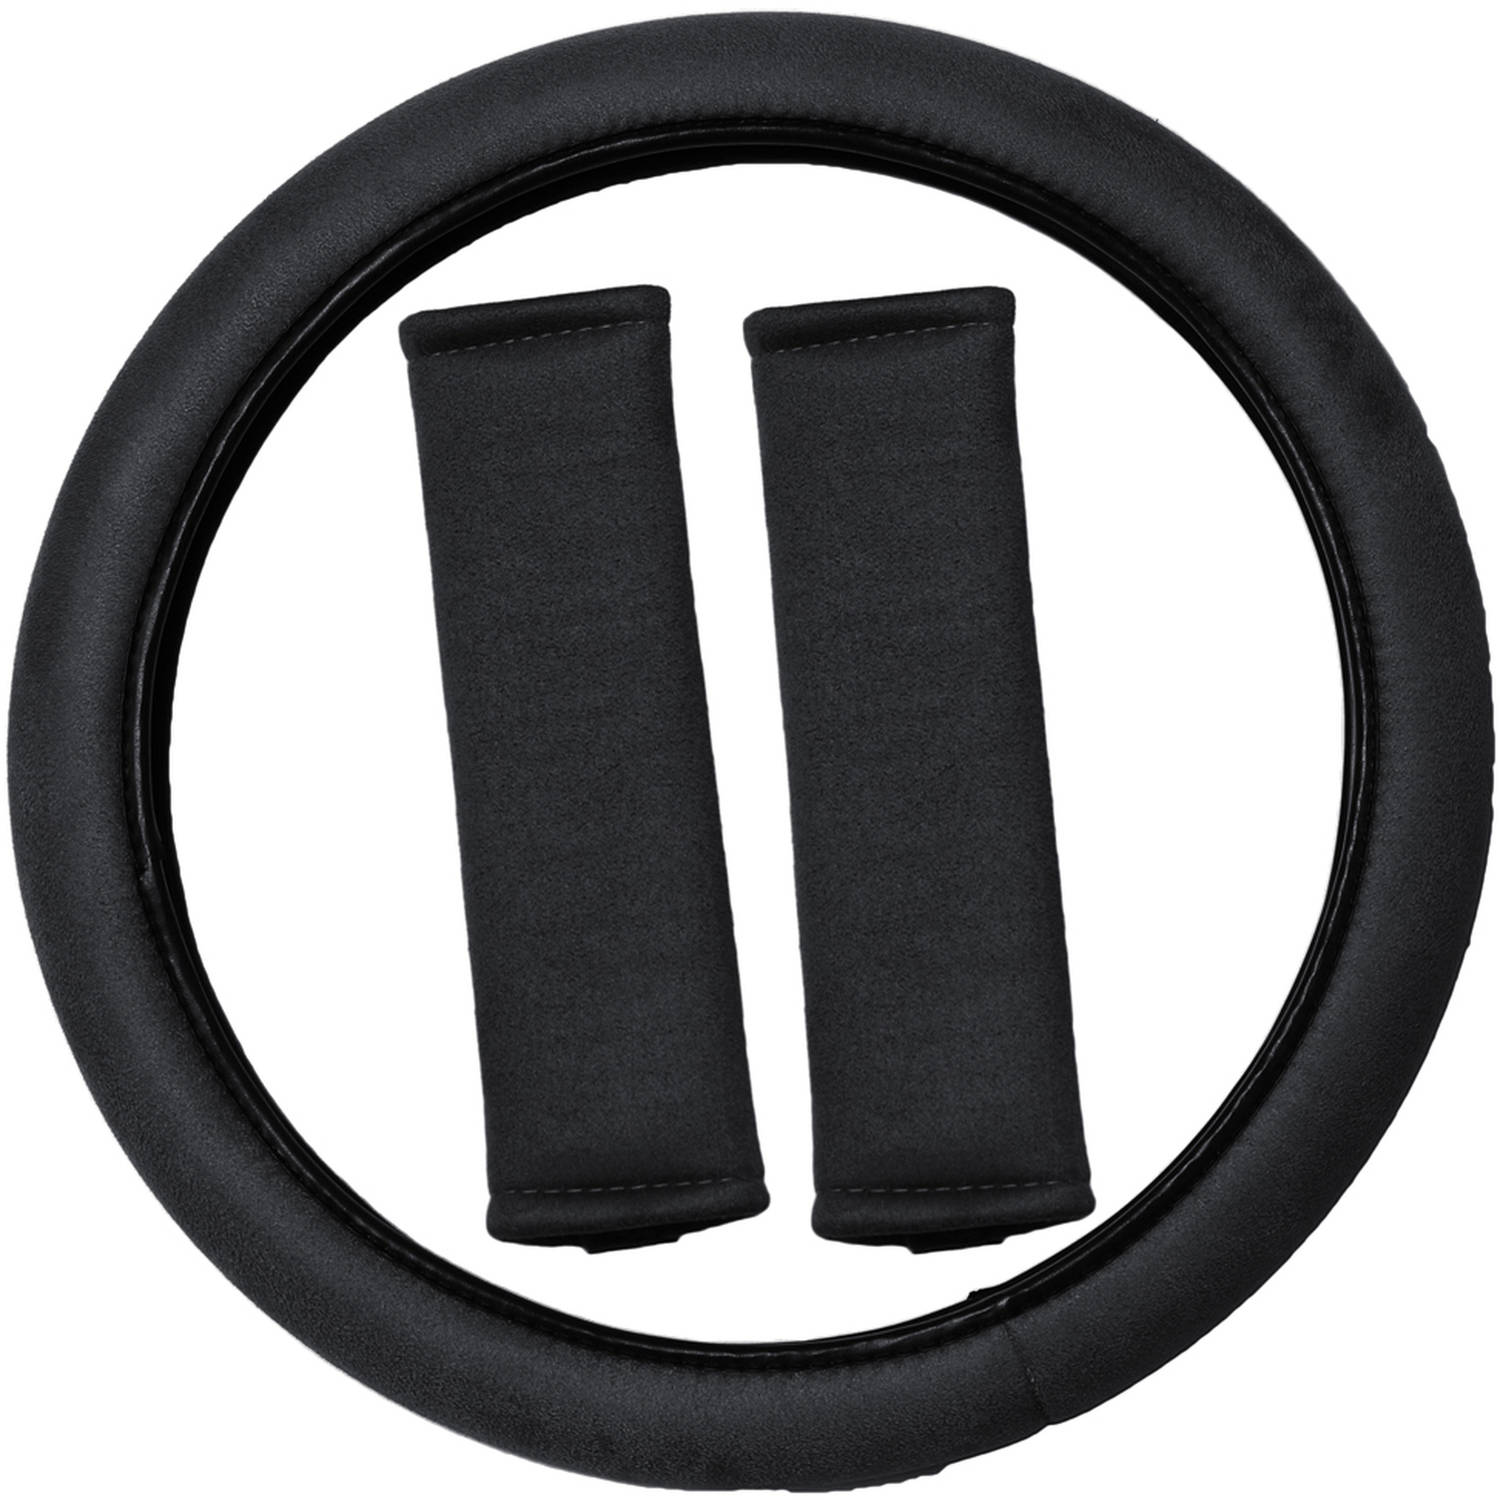 Memory Foam Steering Wheel Cover for Car/Truck/Van/SUV Non-Slip Grip